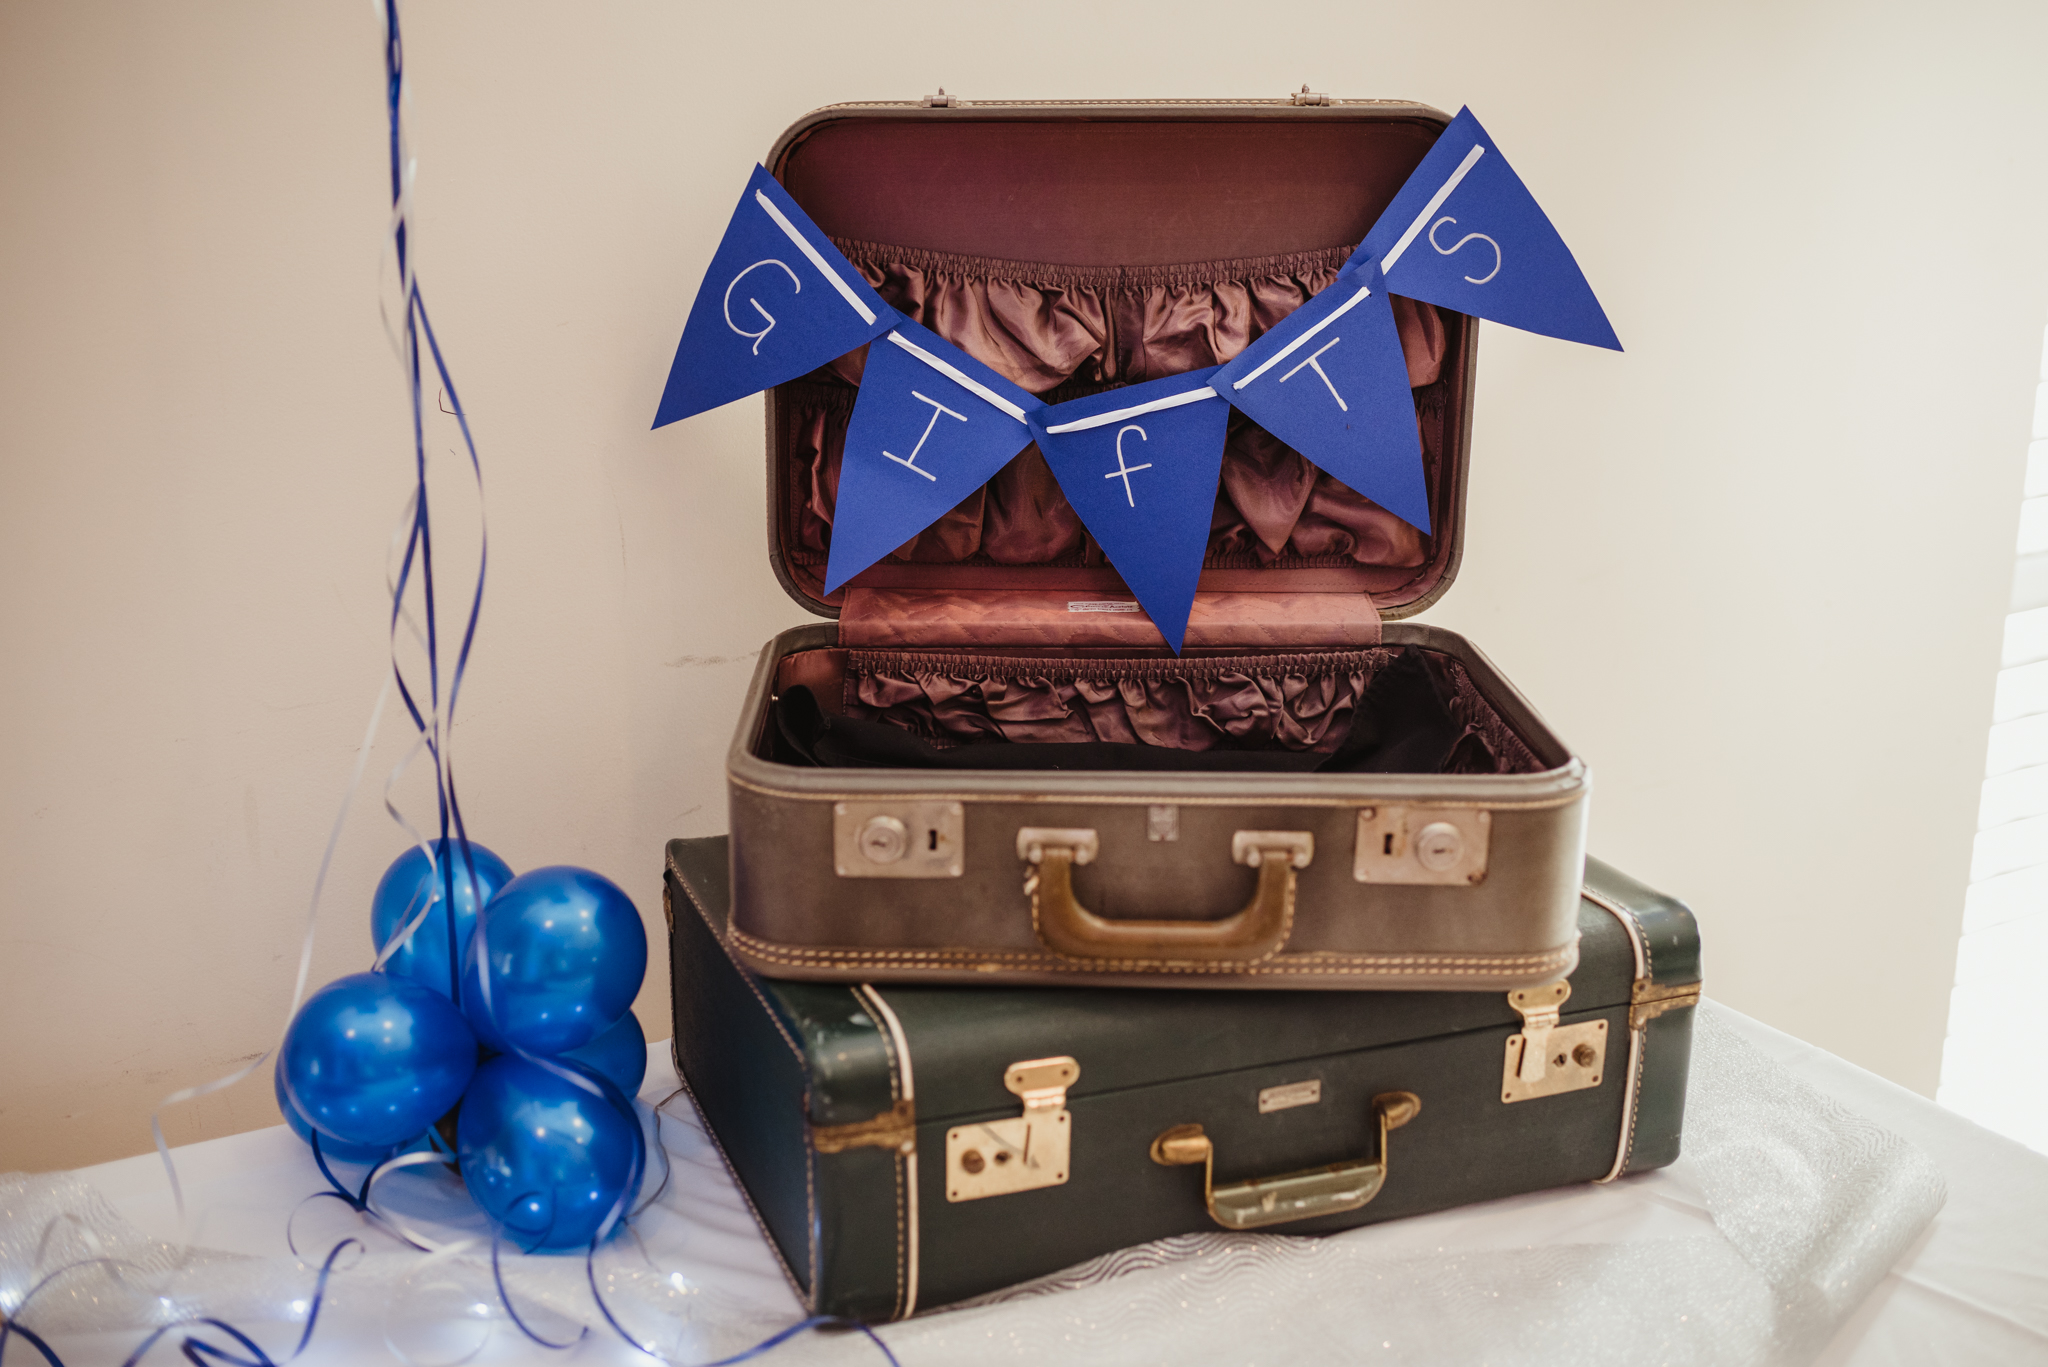 Balloons and suitcases, adorned with a blue banner, are a perfect place for guests to place gifts and cards for the bar mitzvah boy.